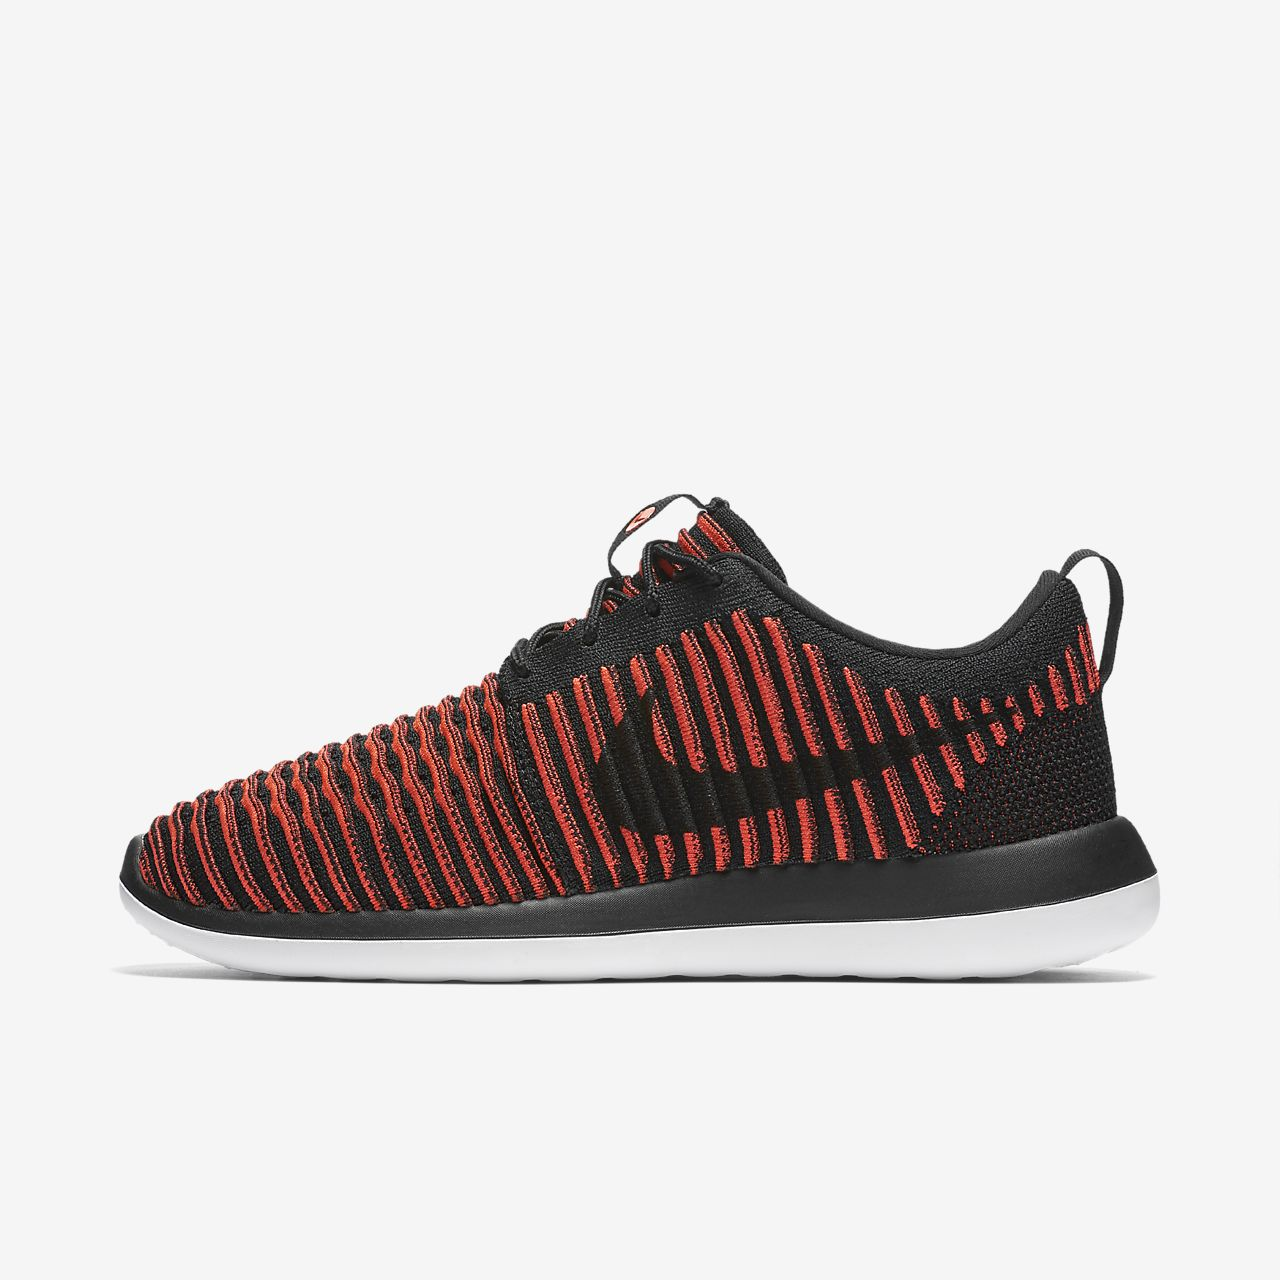 ... Nike Roshe Two Flyknit Men's Shoe